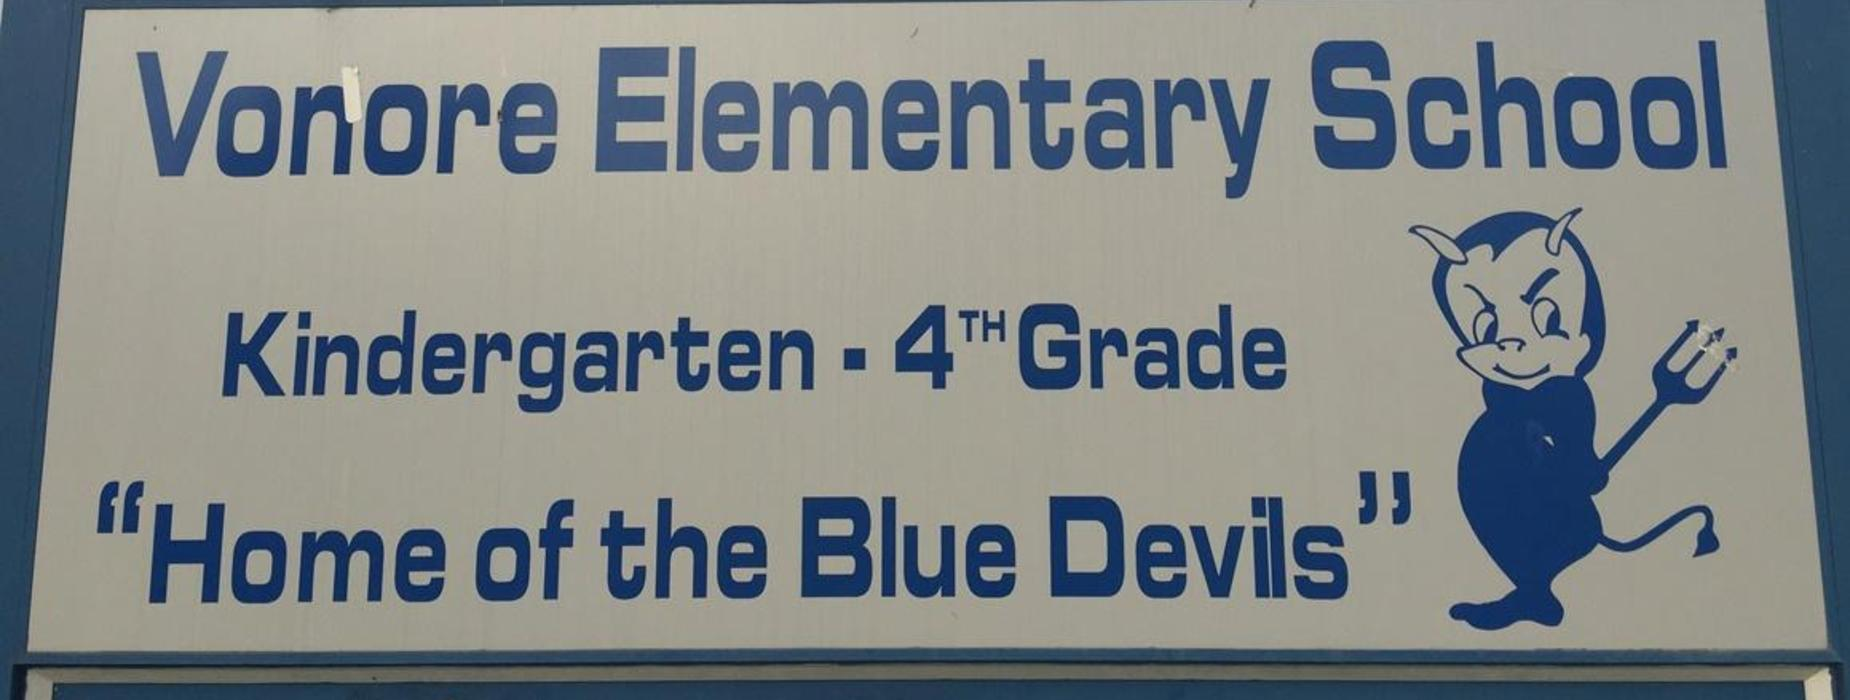 School sign in front of our school.